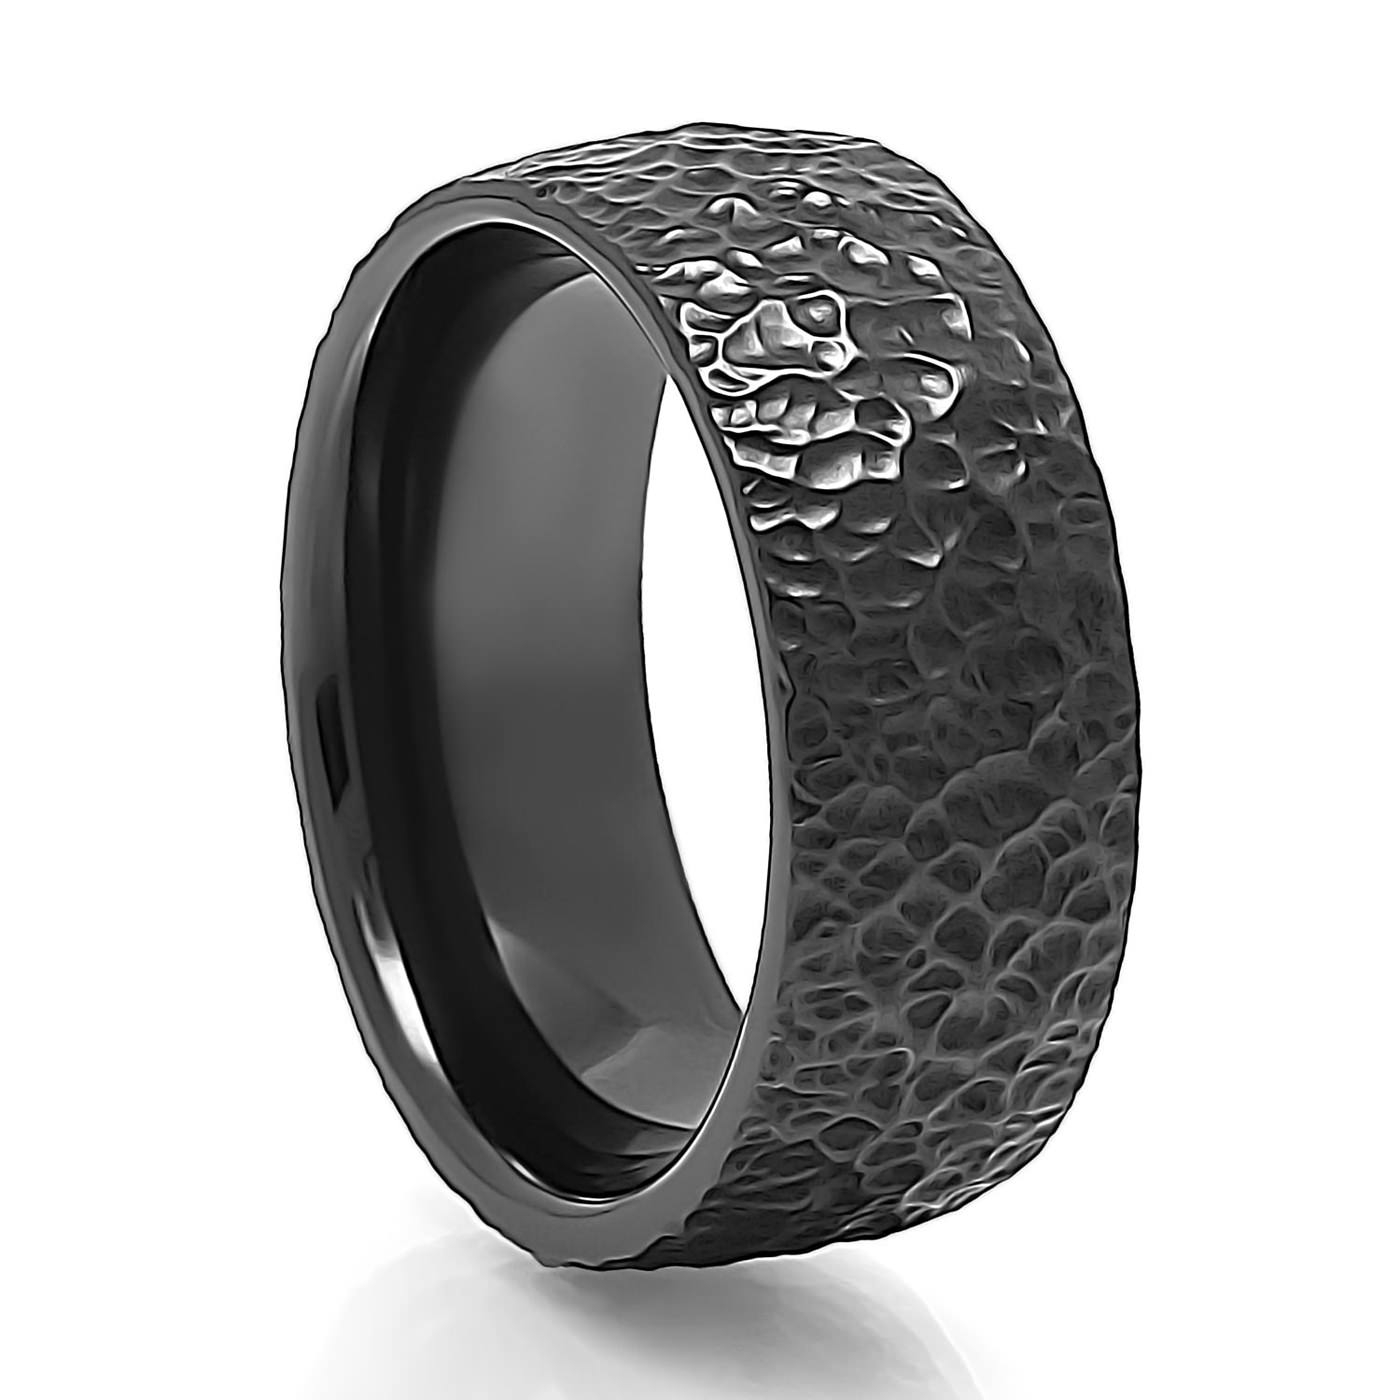 Men's Zaboda Textured Black Zirconium Ringj.r (View 12 of 15)